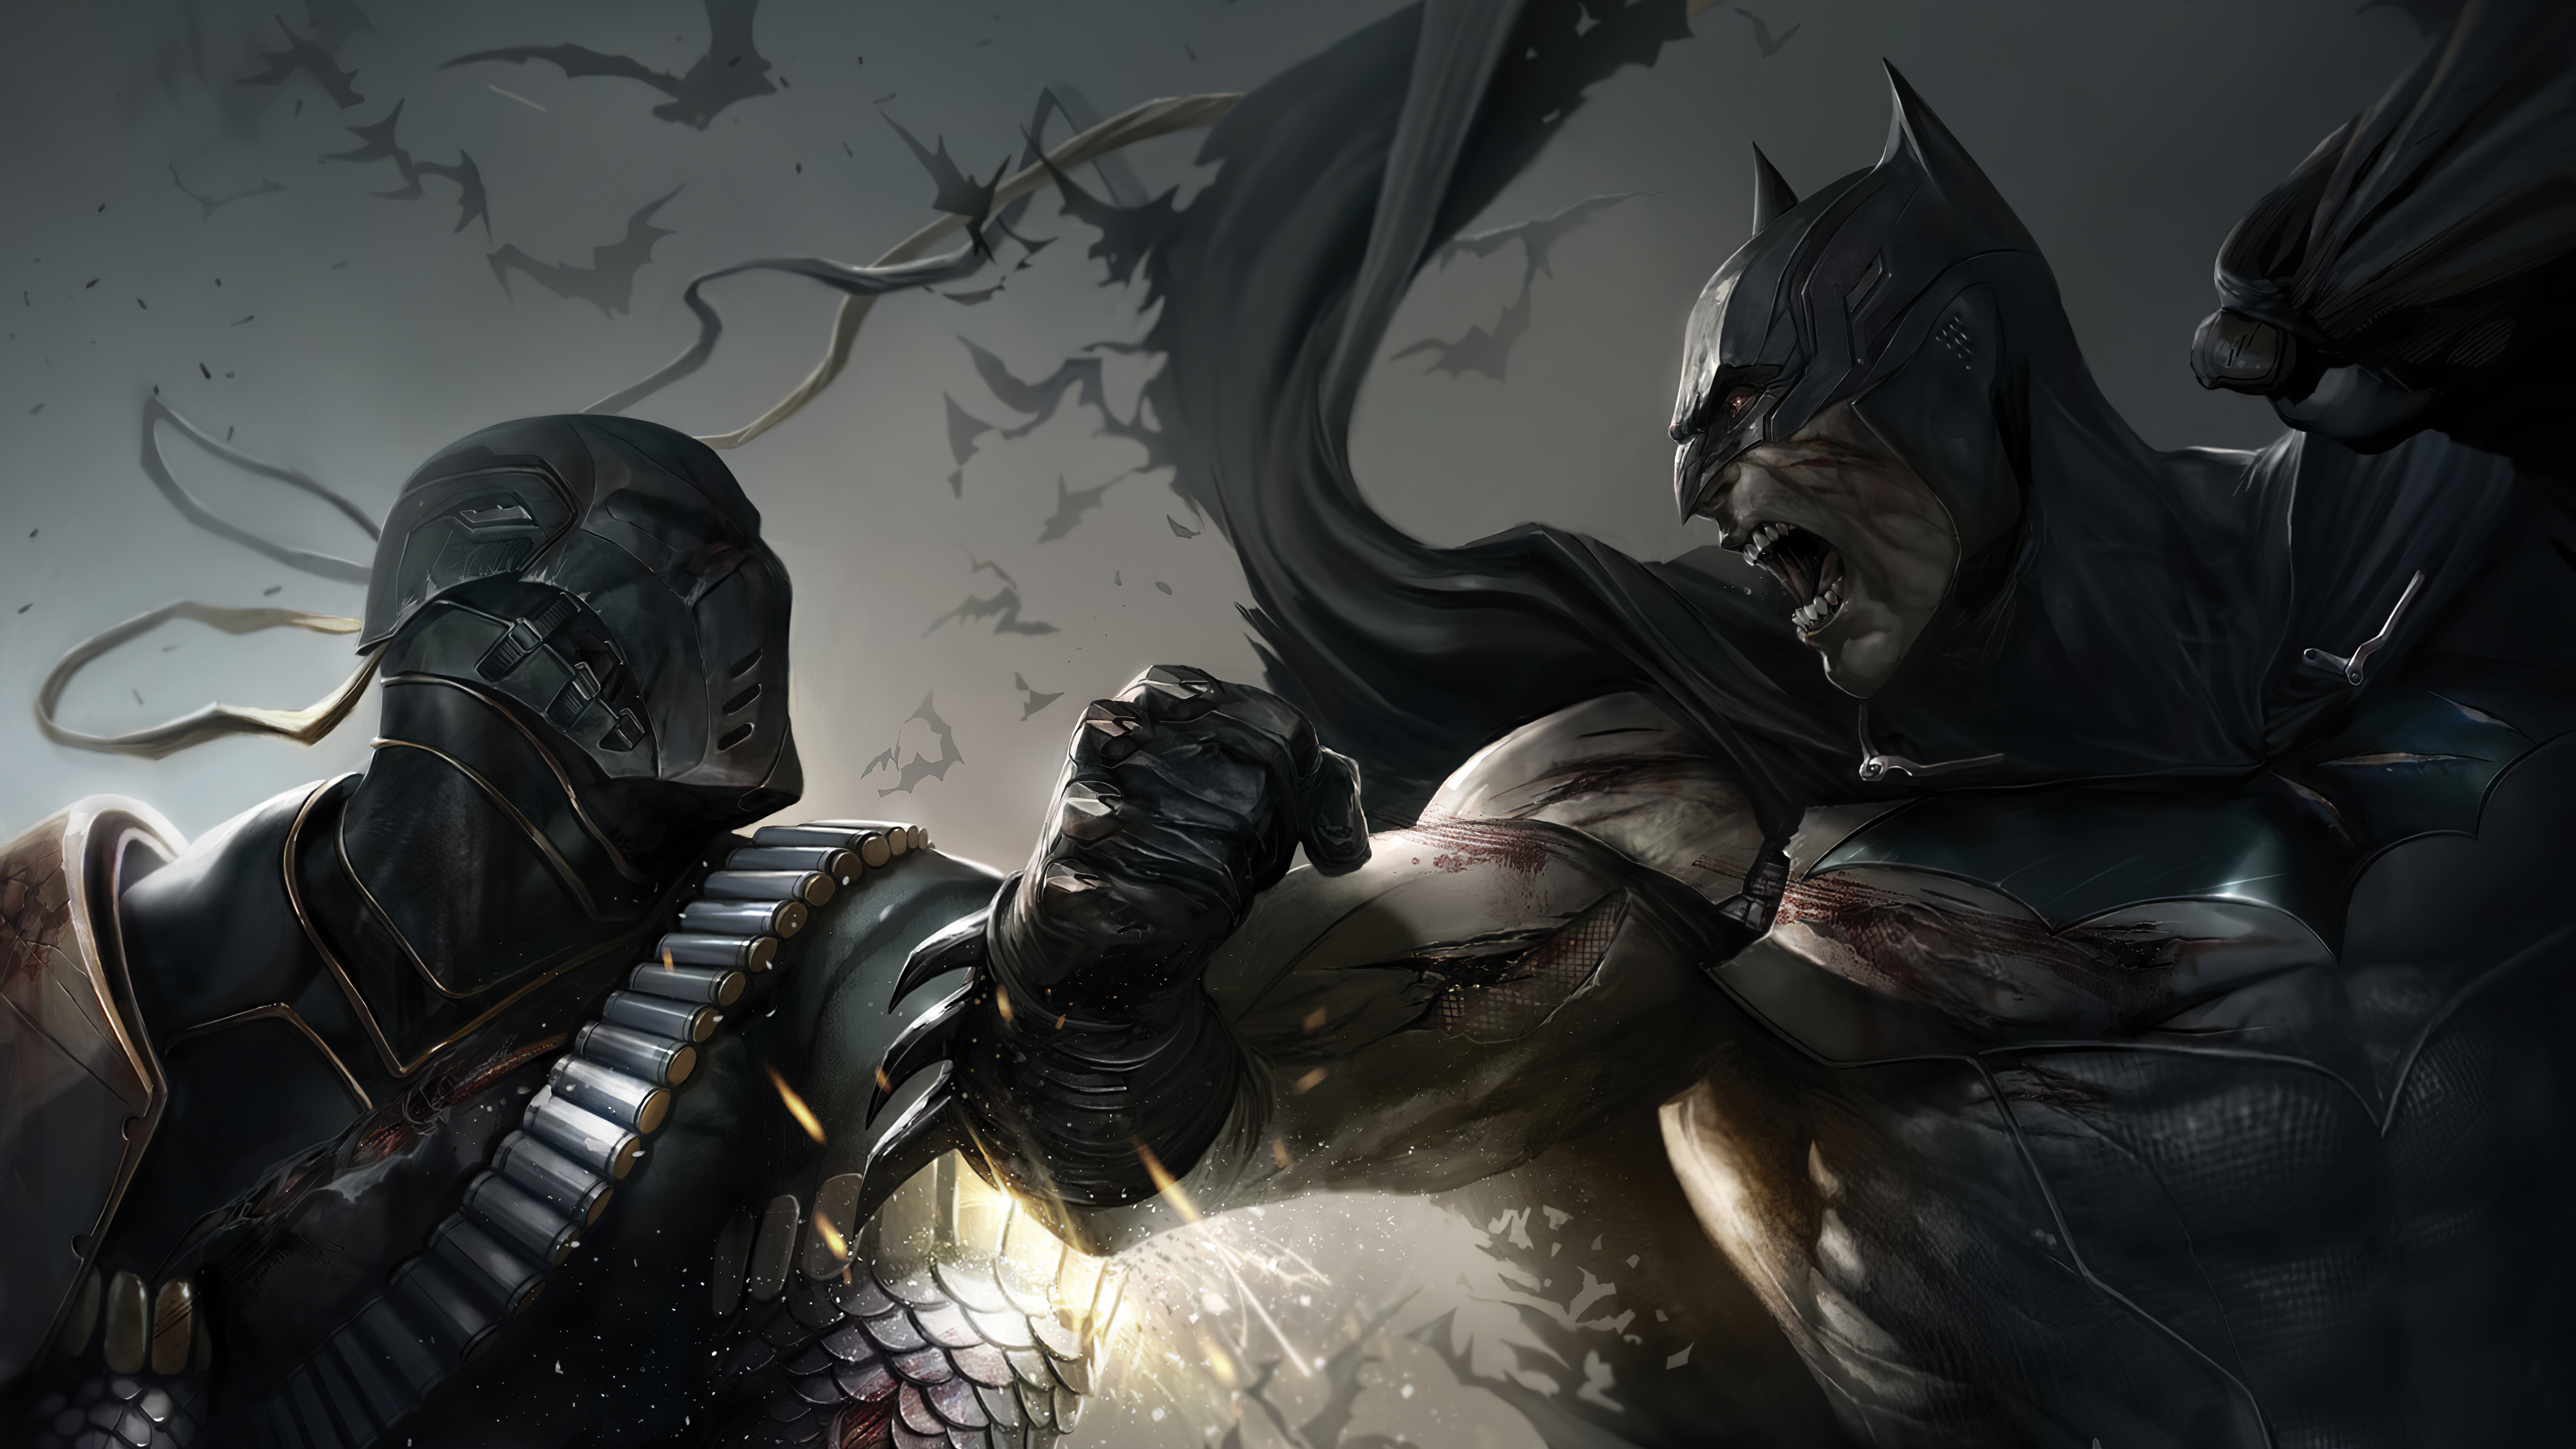 deathstroke vs batman 1581357663 - Deathstroke vs Batman - Deathstroke vs Batman wallpapers, Deathstroke vs Batman 4k wallpapers, Deathstroke and Batman wallpapers 4k